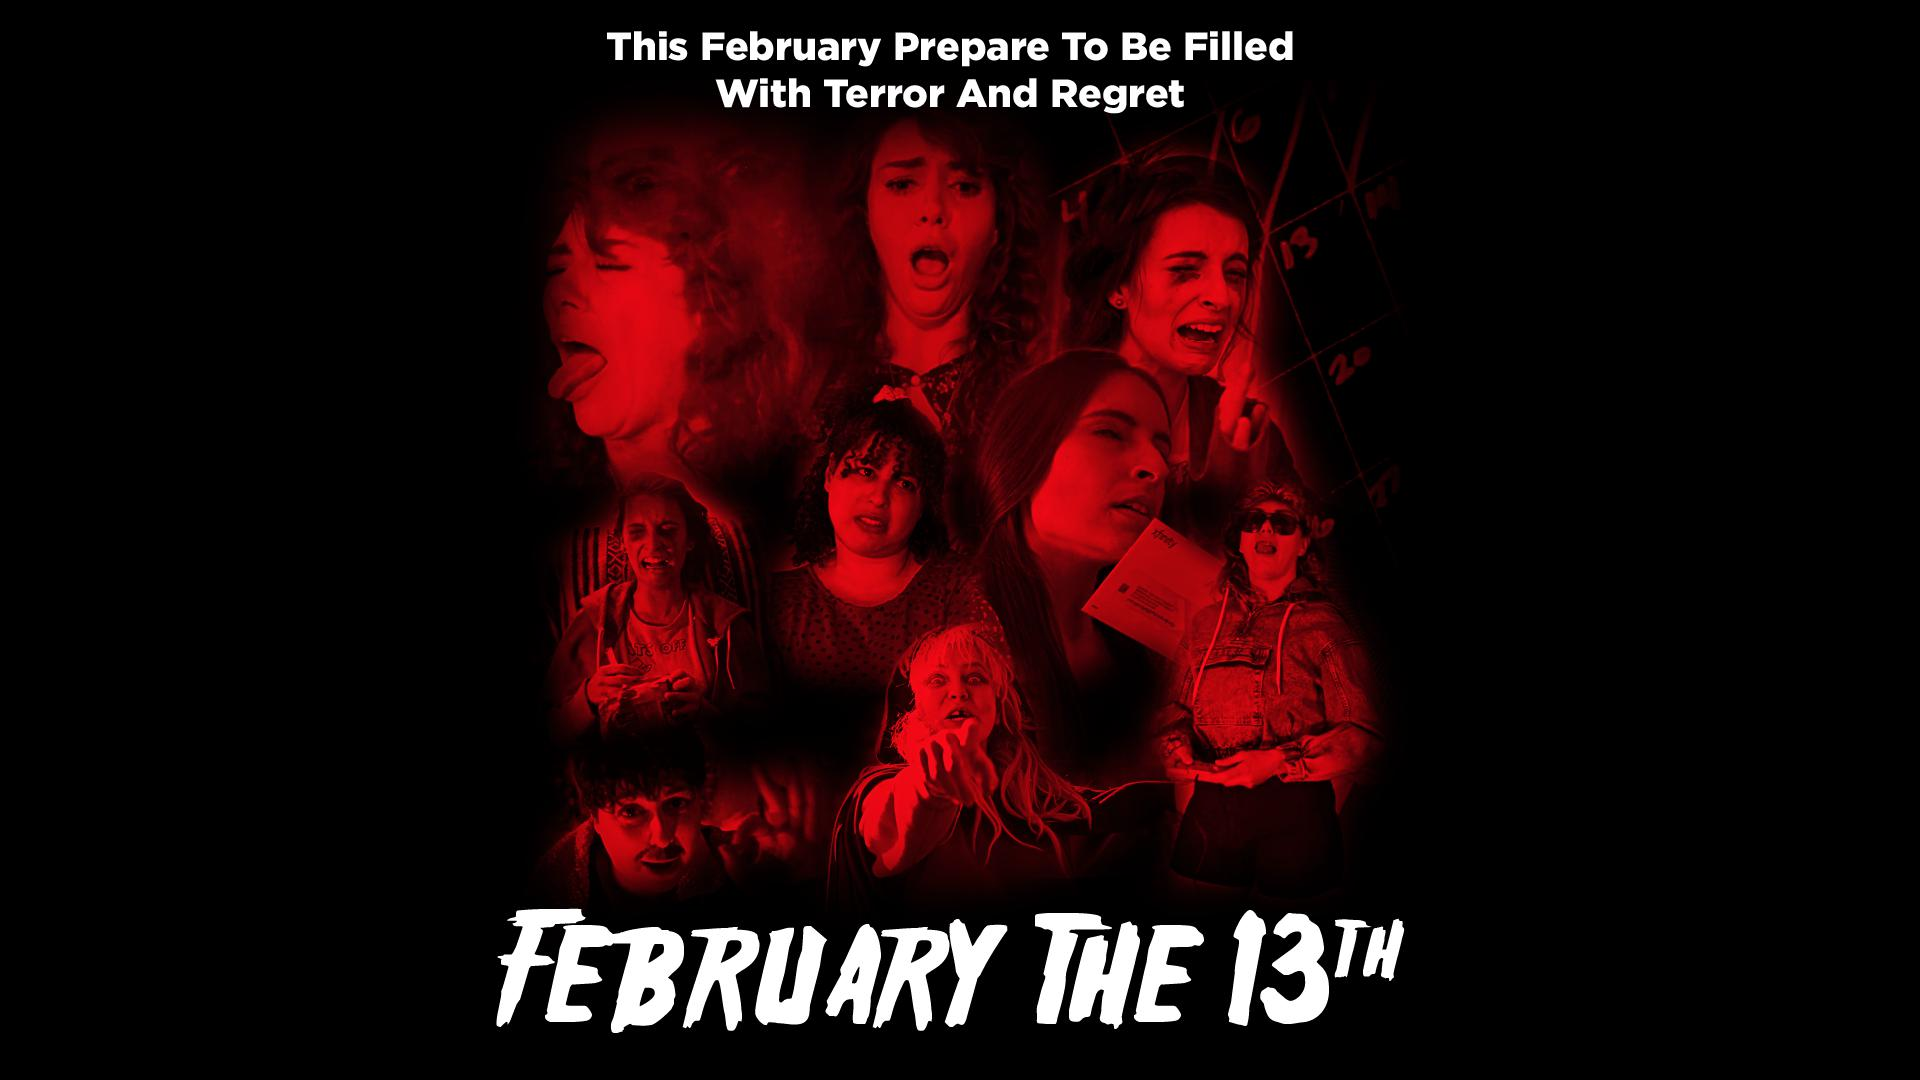 February the 13th